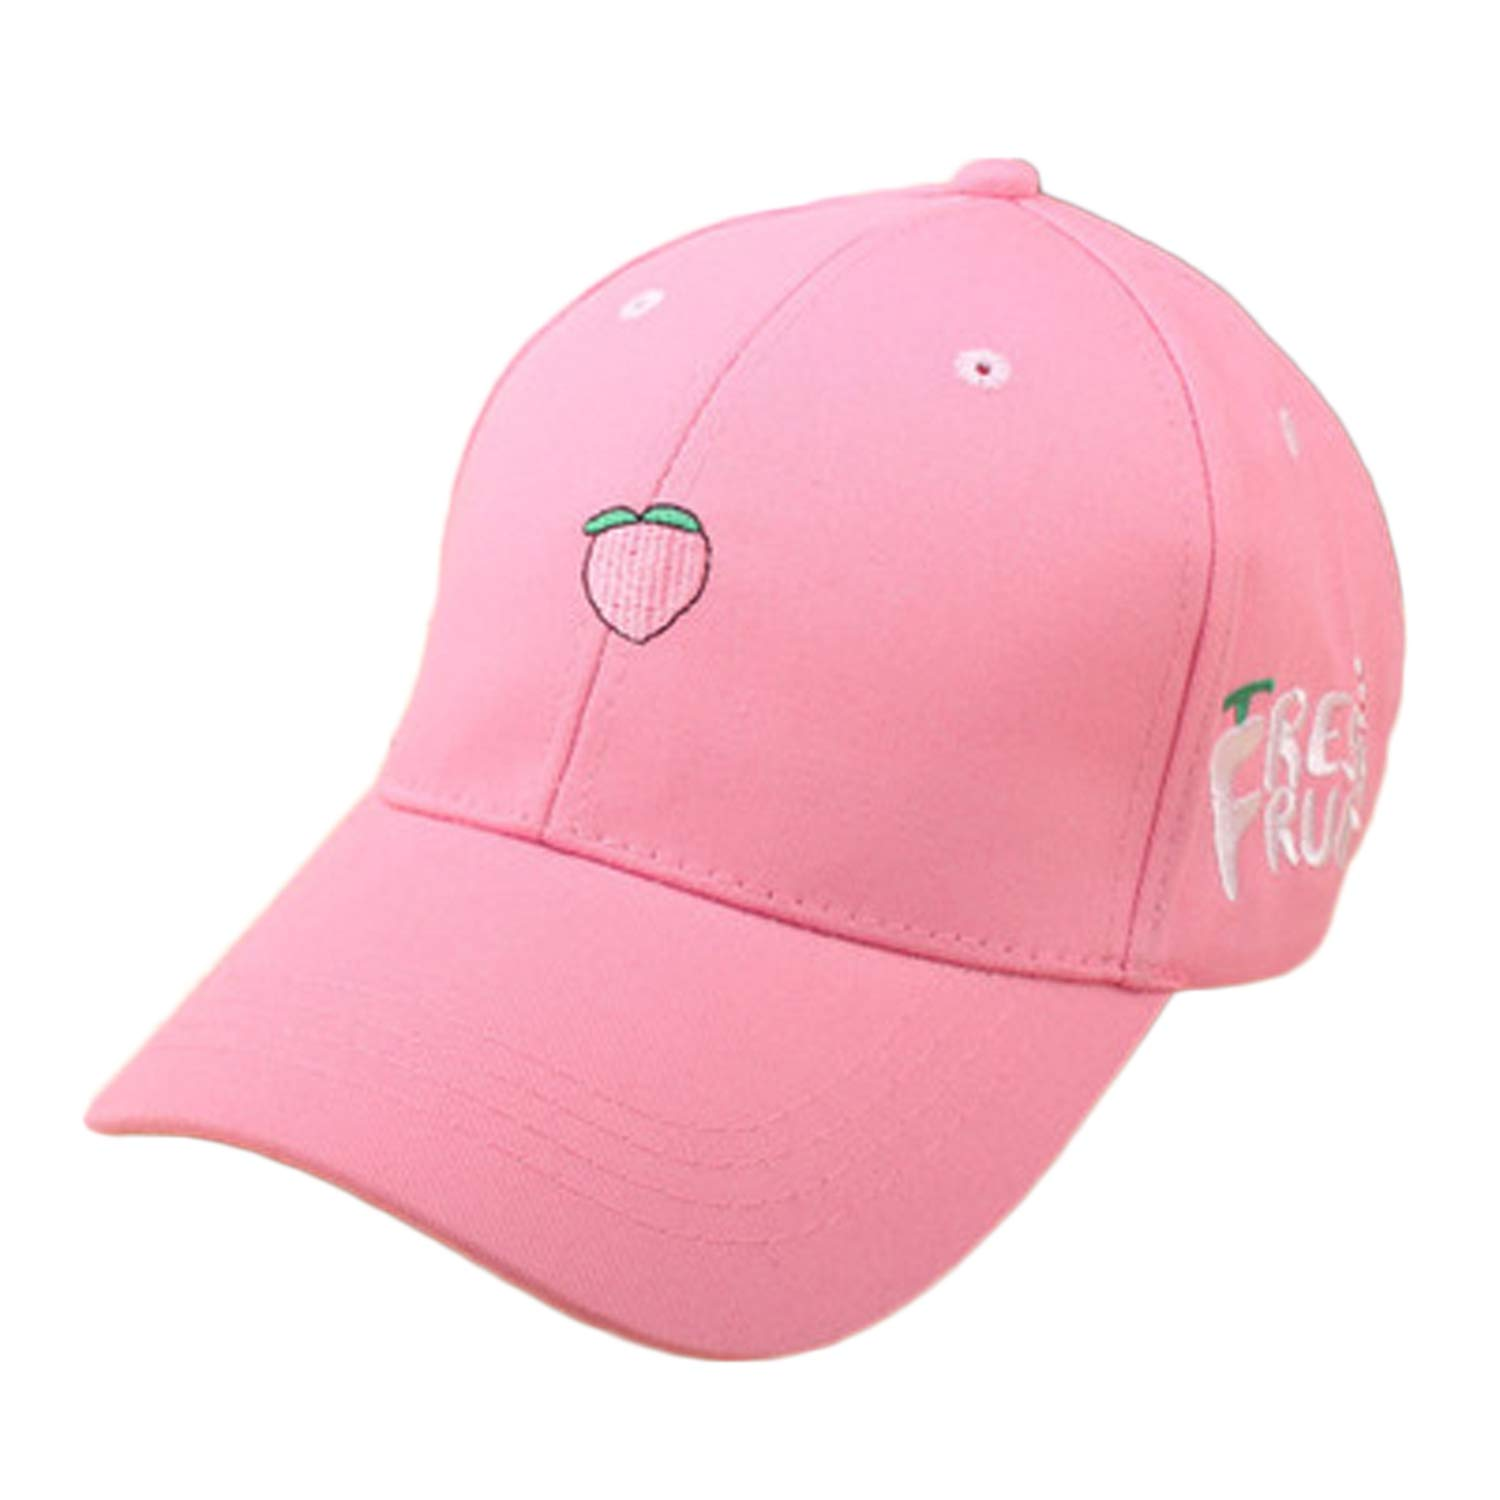 Ilense Spring Leisure Fruit Embroidery Hat Strawberry Banana Cherry Orange Peach Baseball Cap for Women